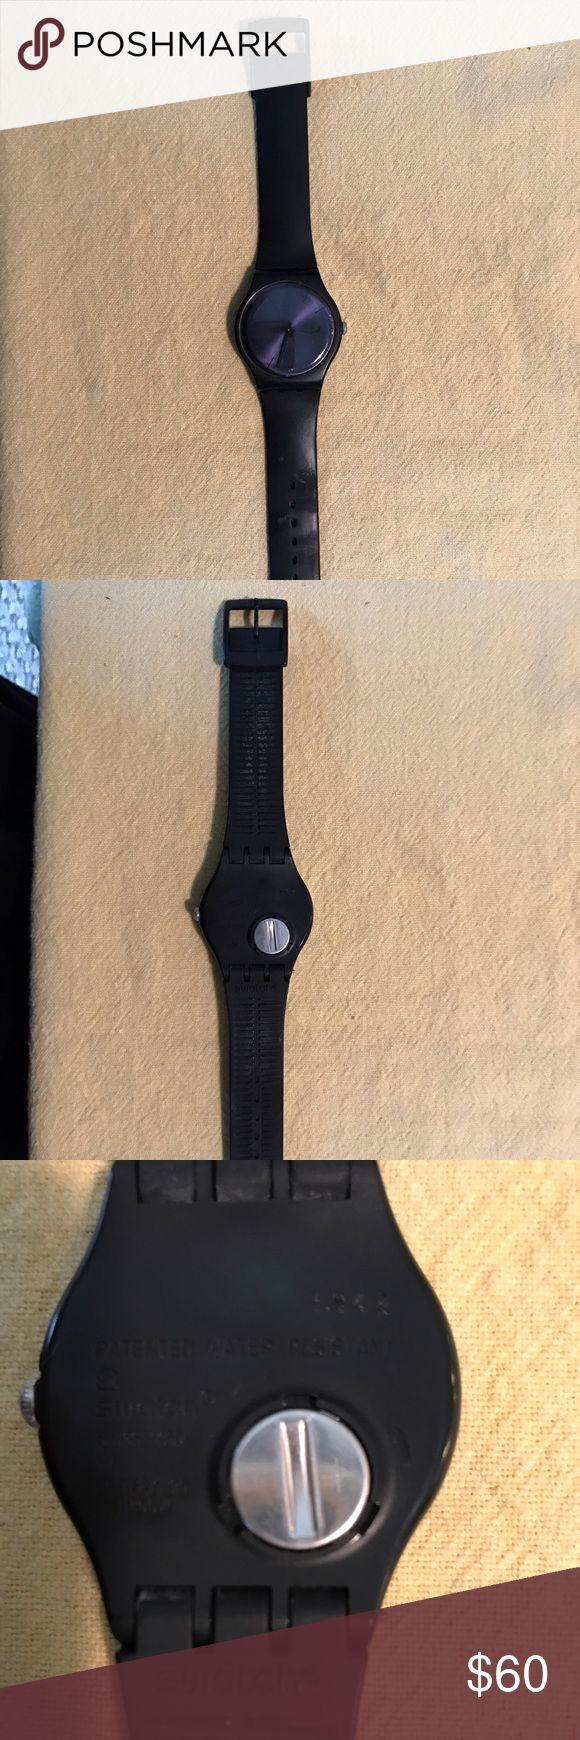 Black on Black Swatch Rubber Watch Gently used - very little ware - only wore a handful of times - color is black on black Swatch Accessories Watches